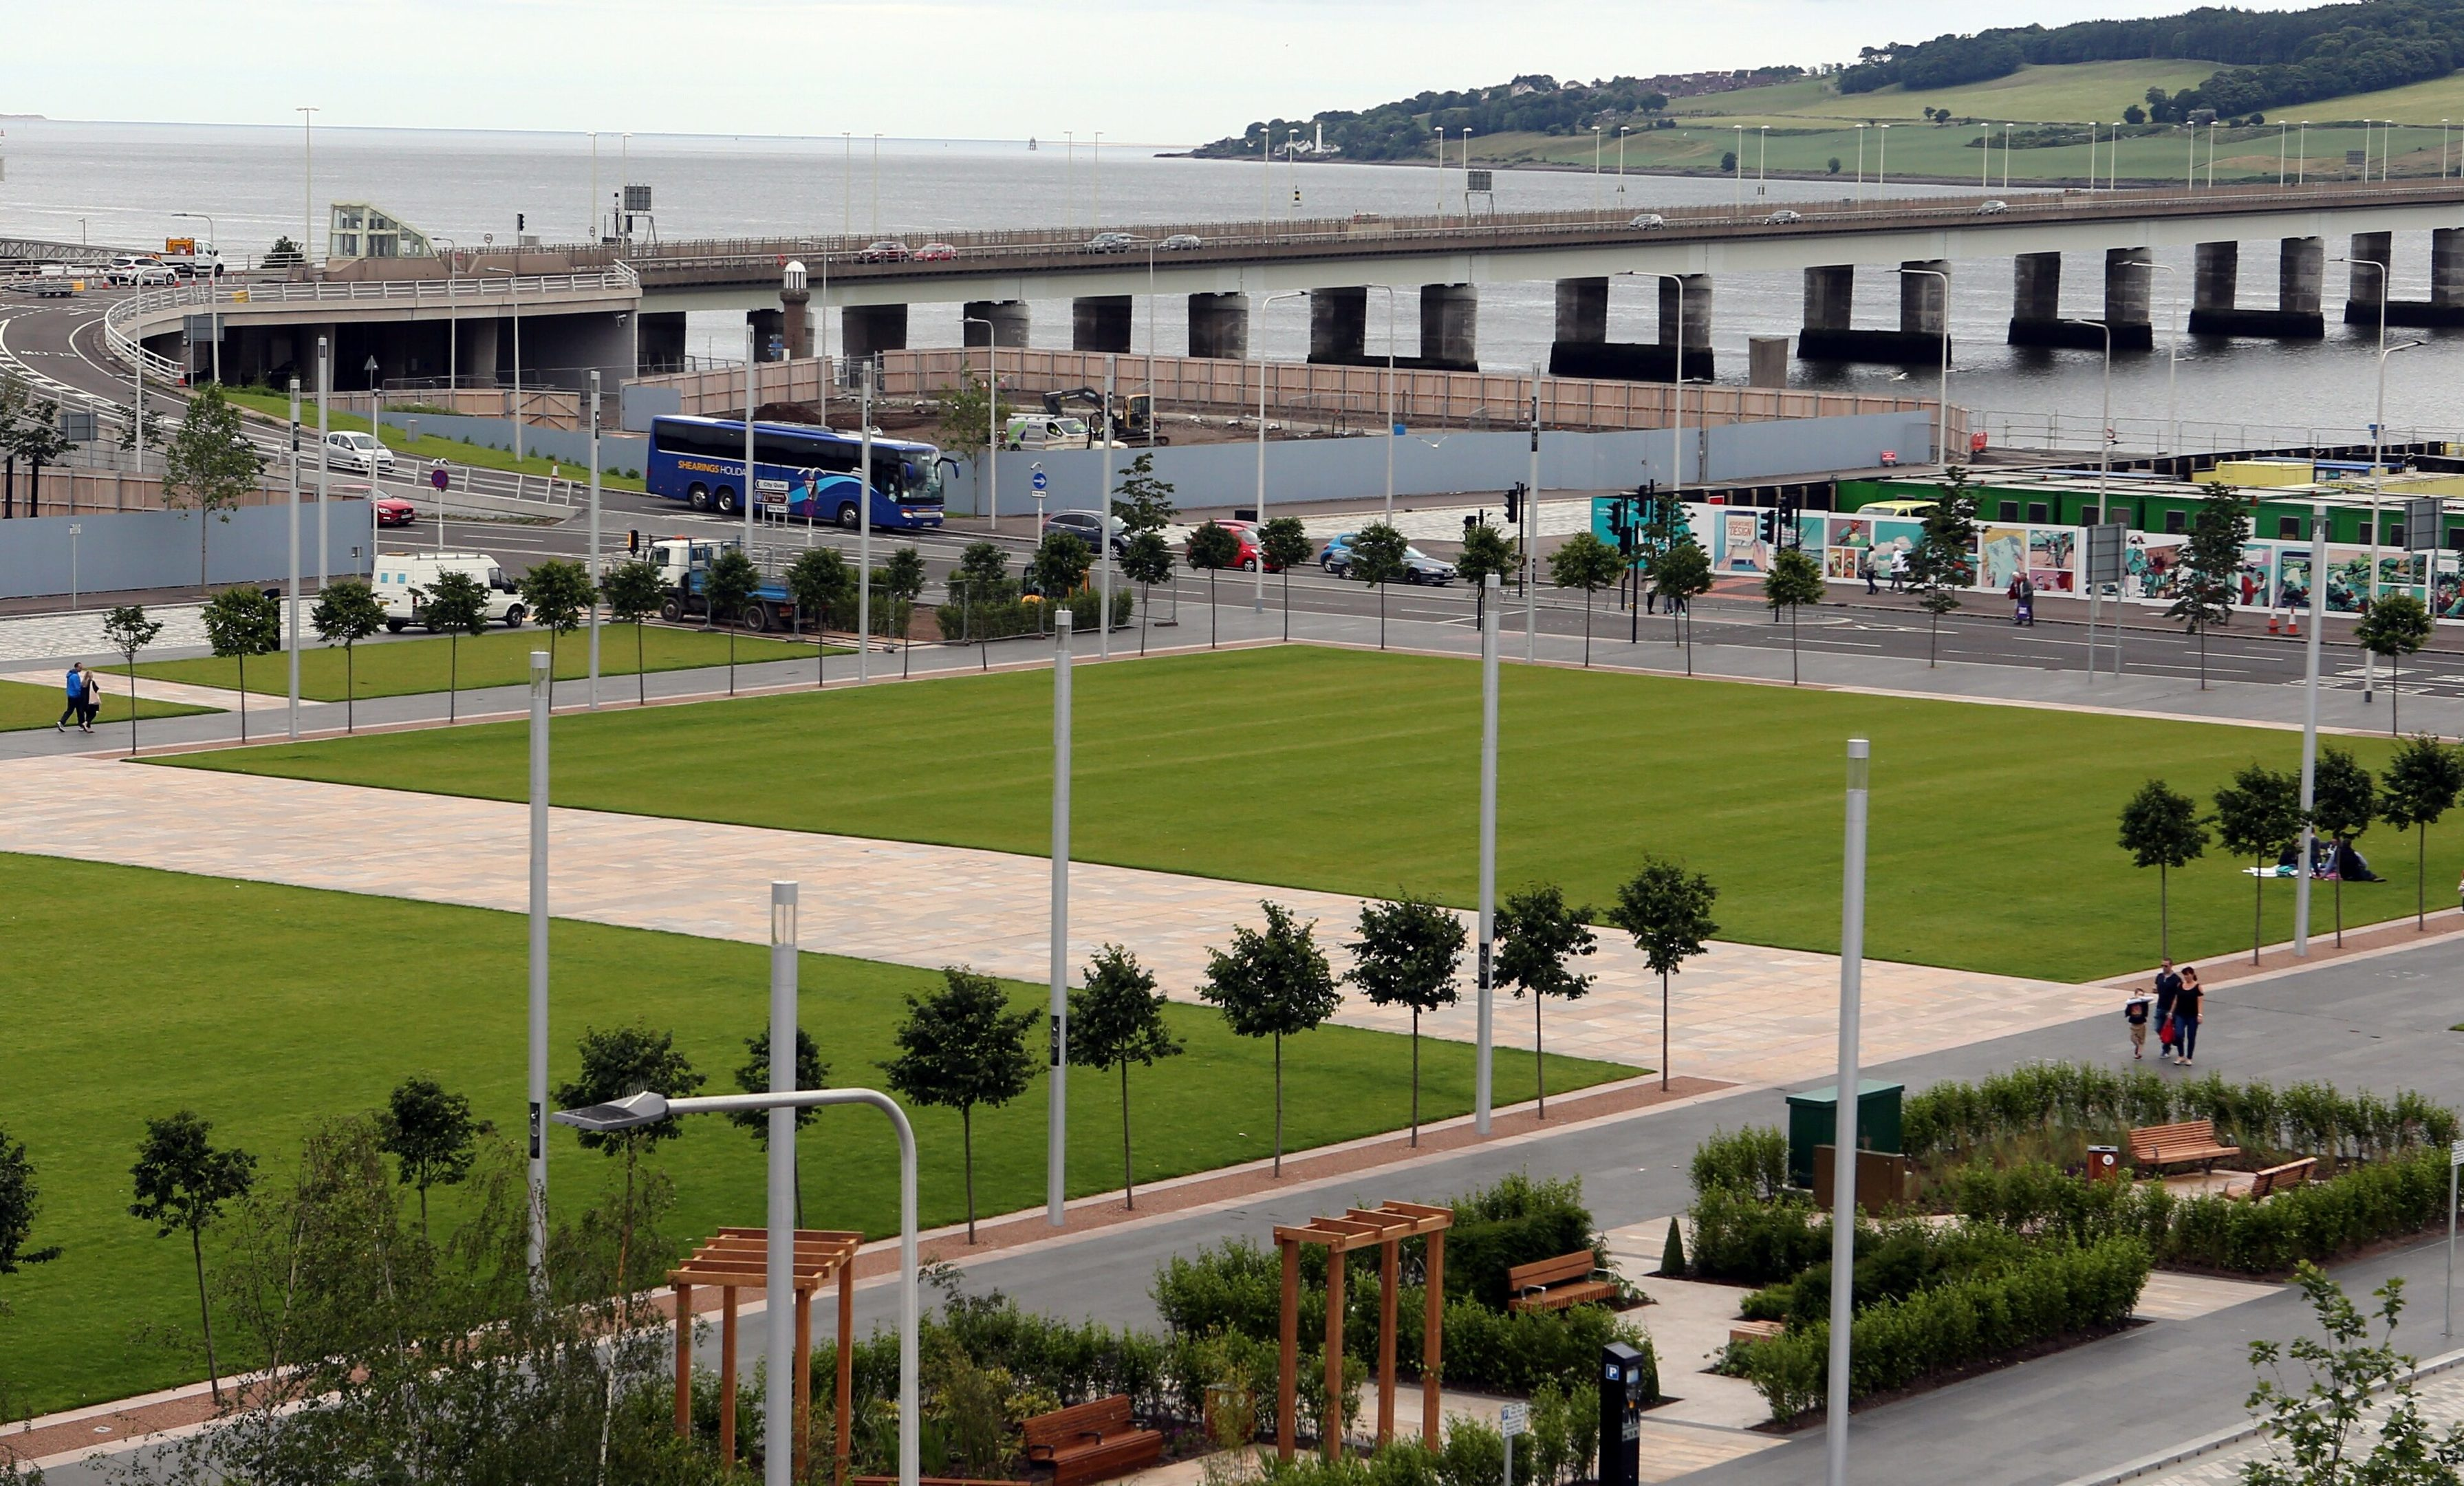 Slessor Gardens will host one of four Big Sleepouts taking place in Scotland this year.